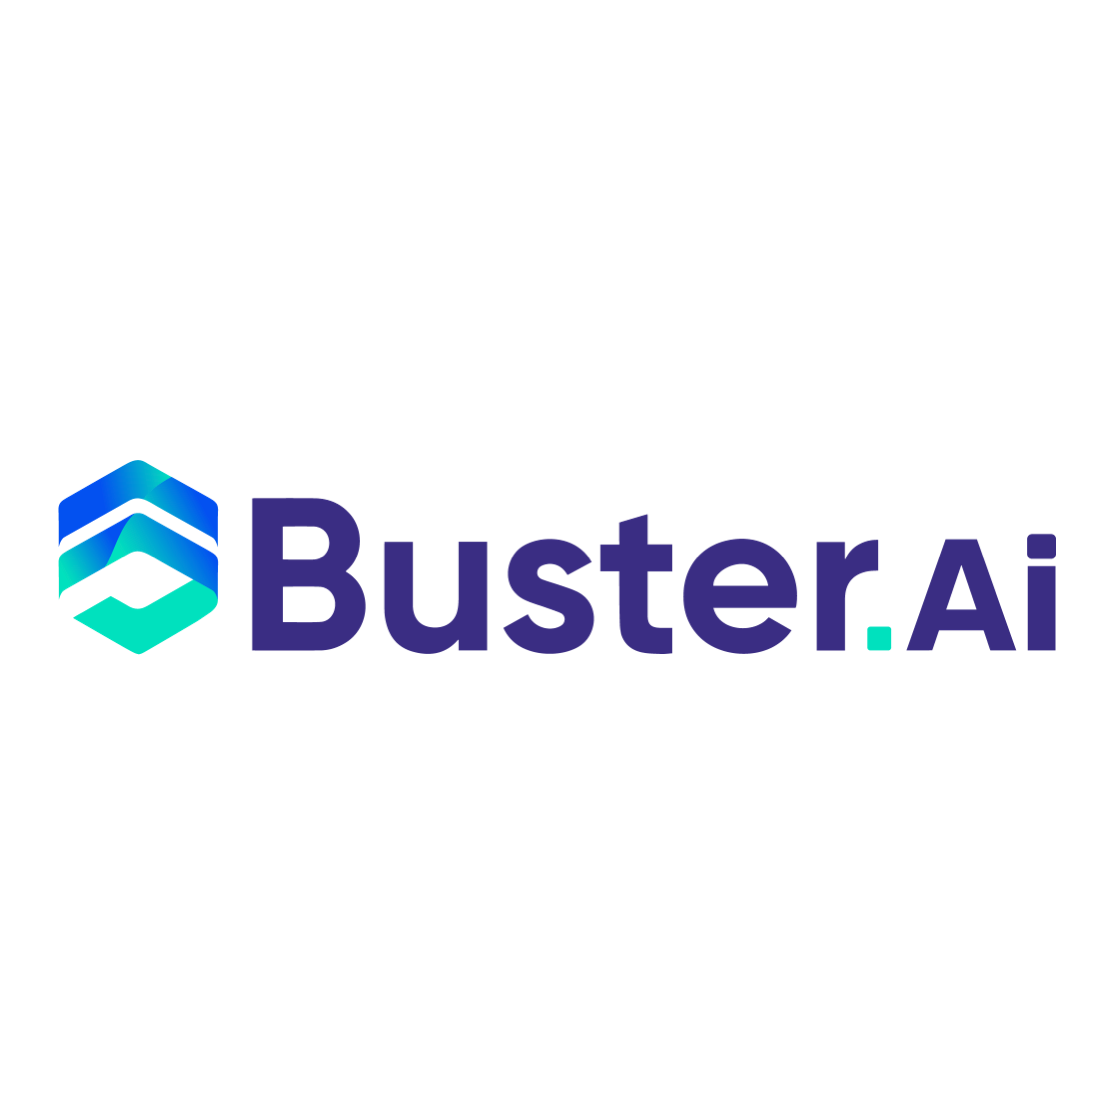 Buster.Ai